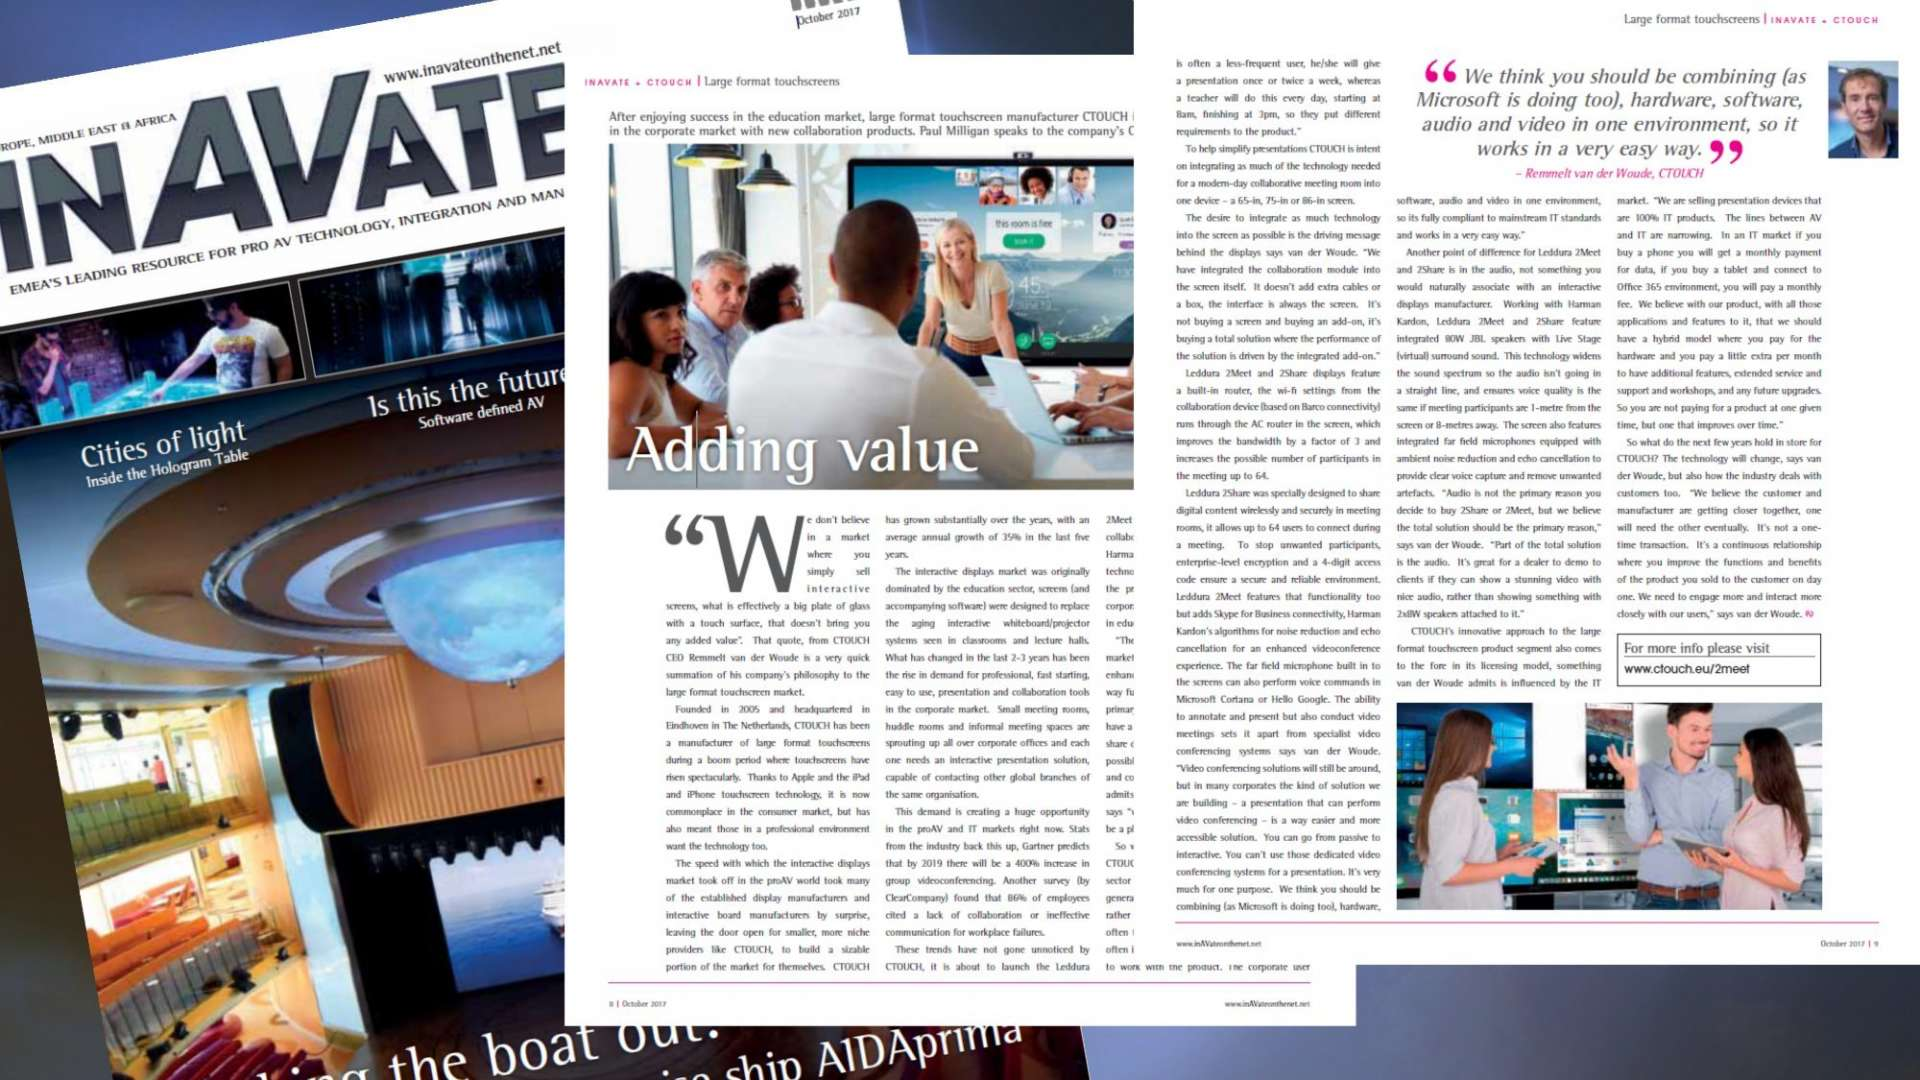 In Avate-article-web-small